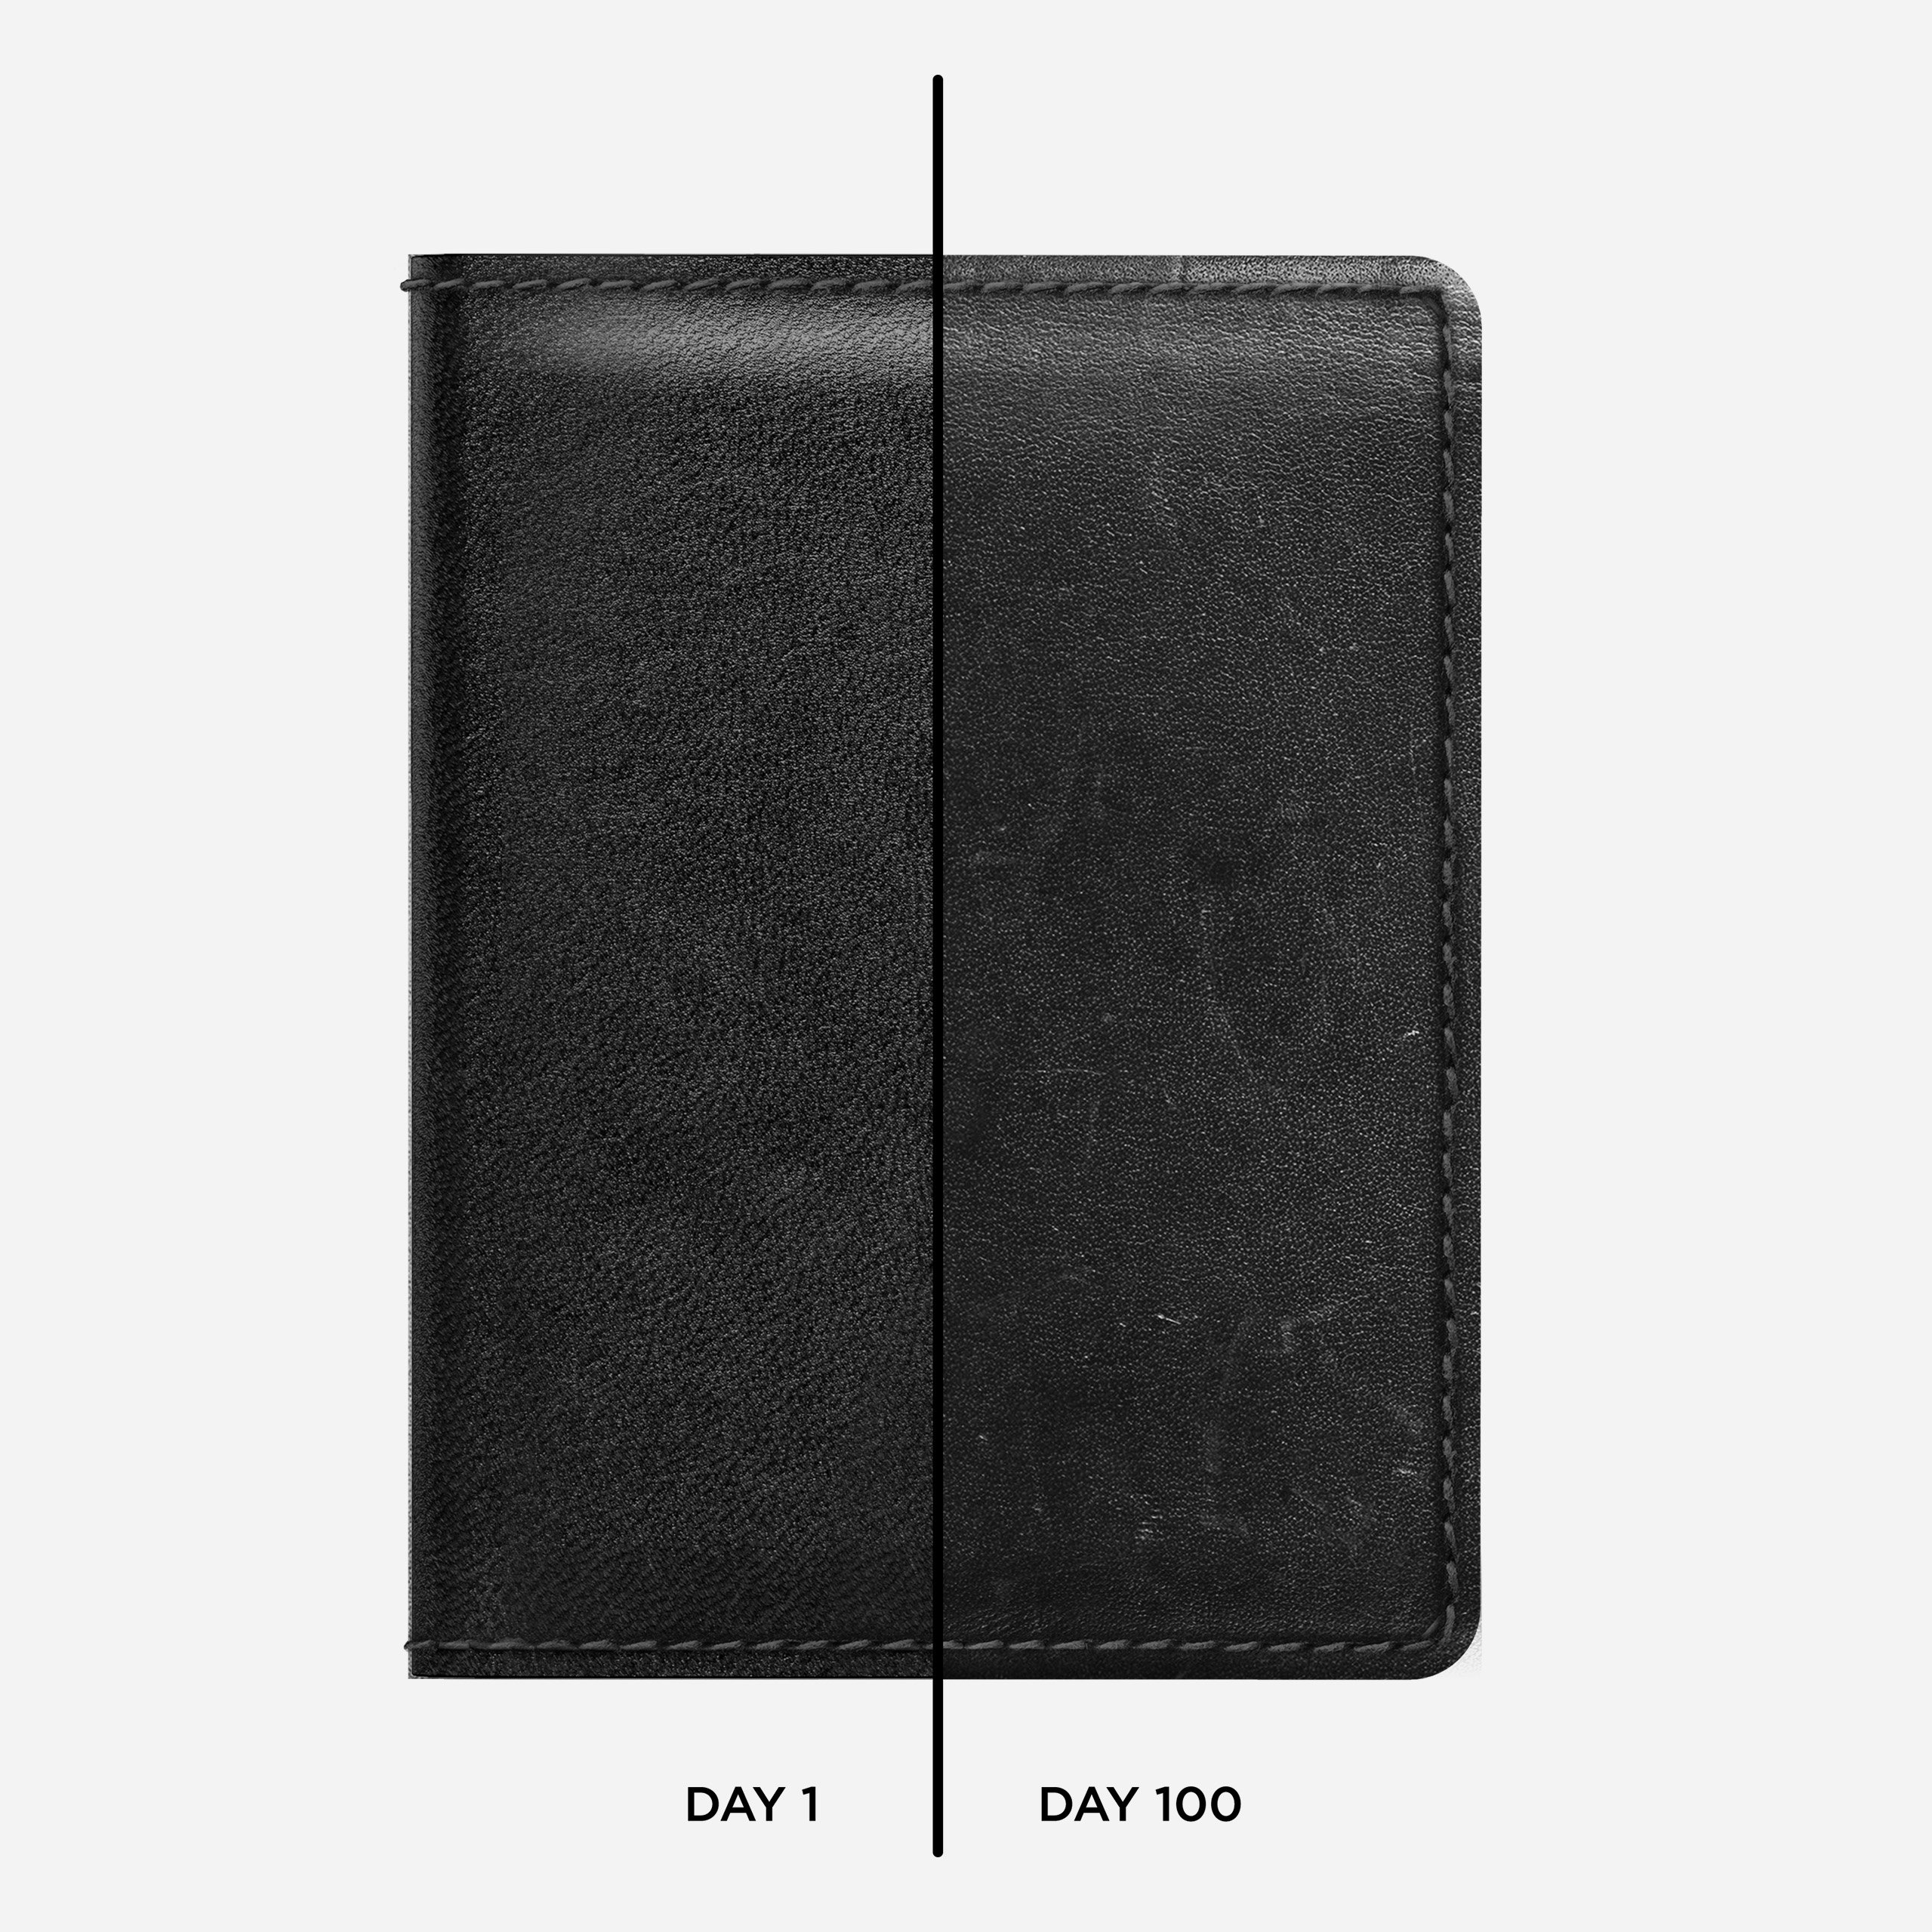 Bi-Fold Leather Wallet Black Horween Leather